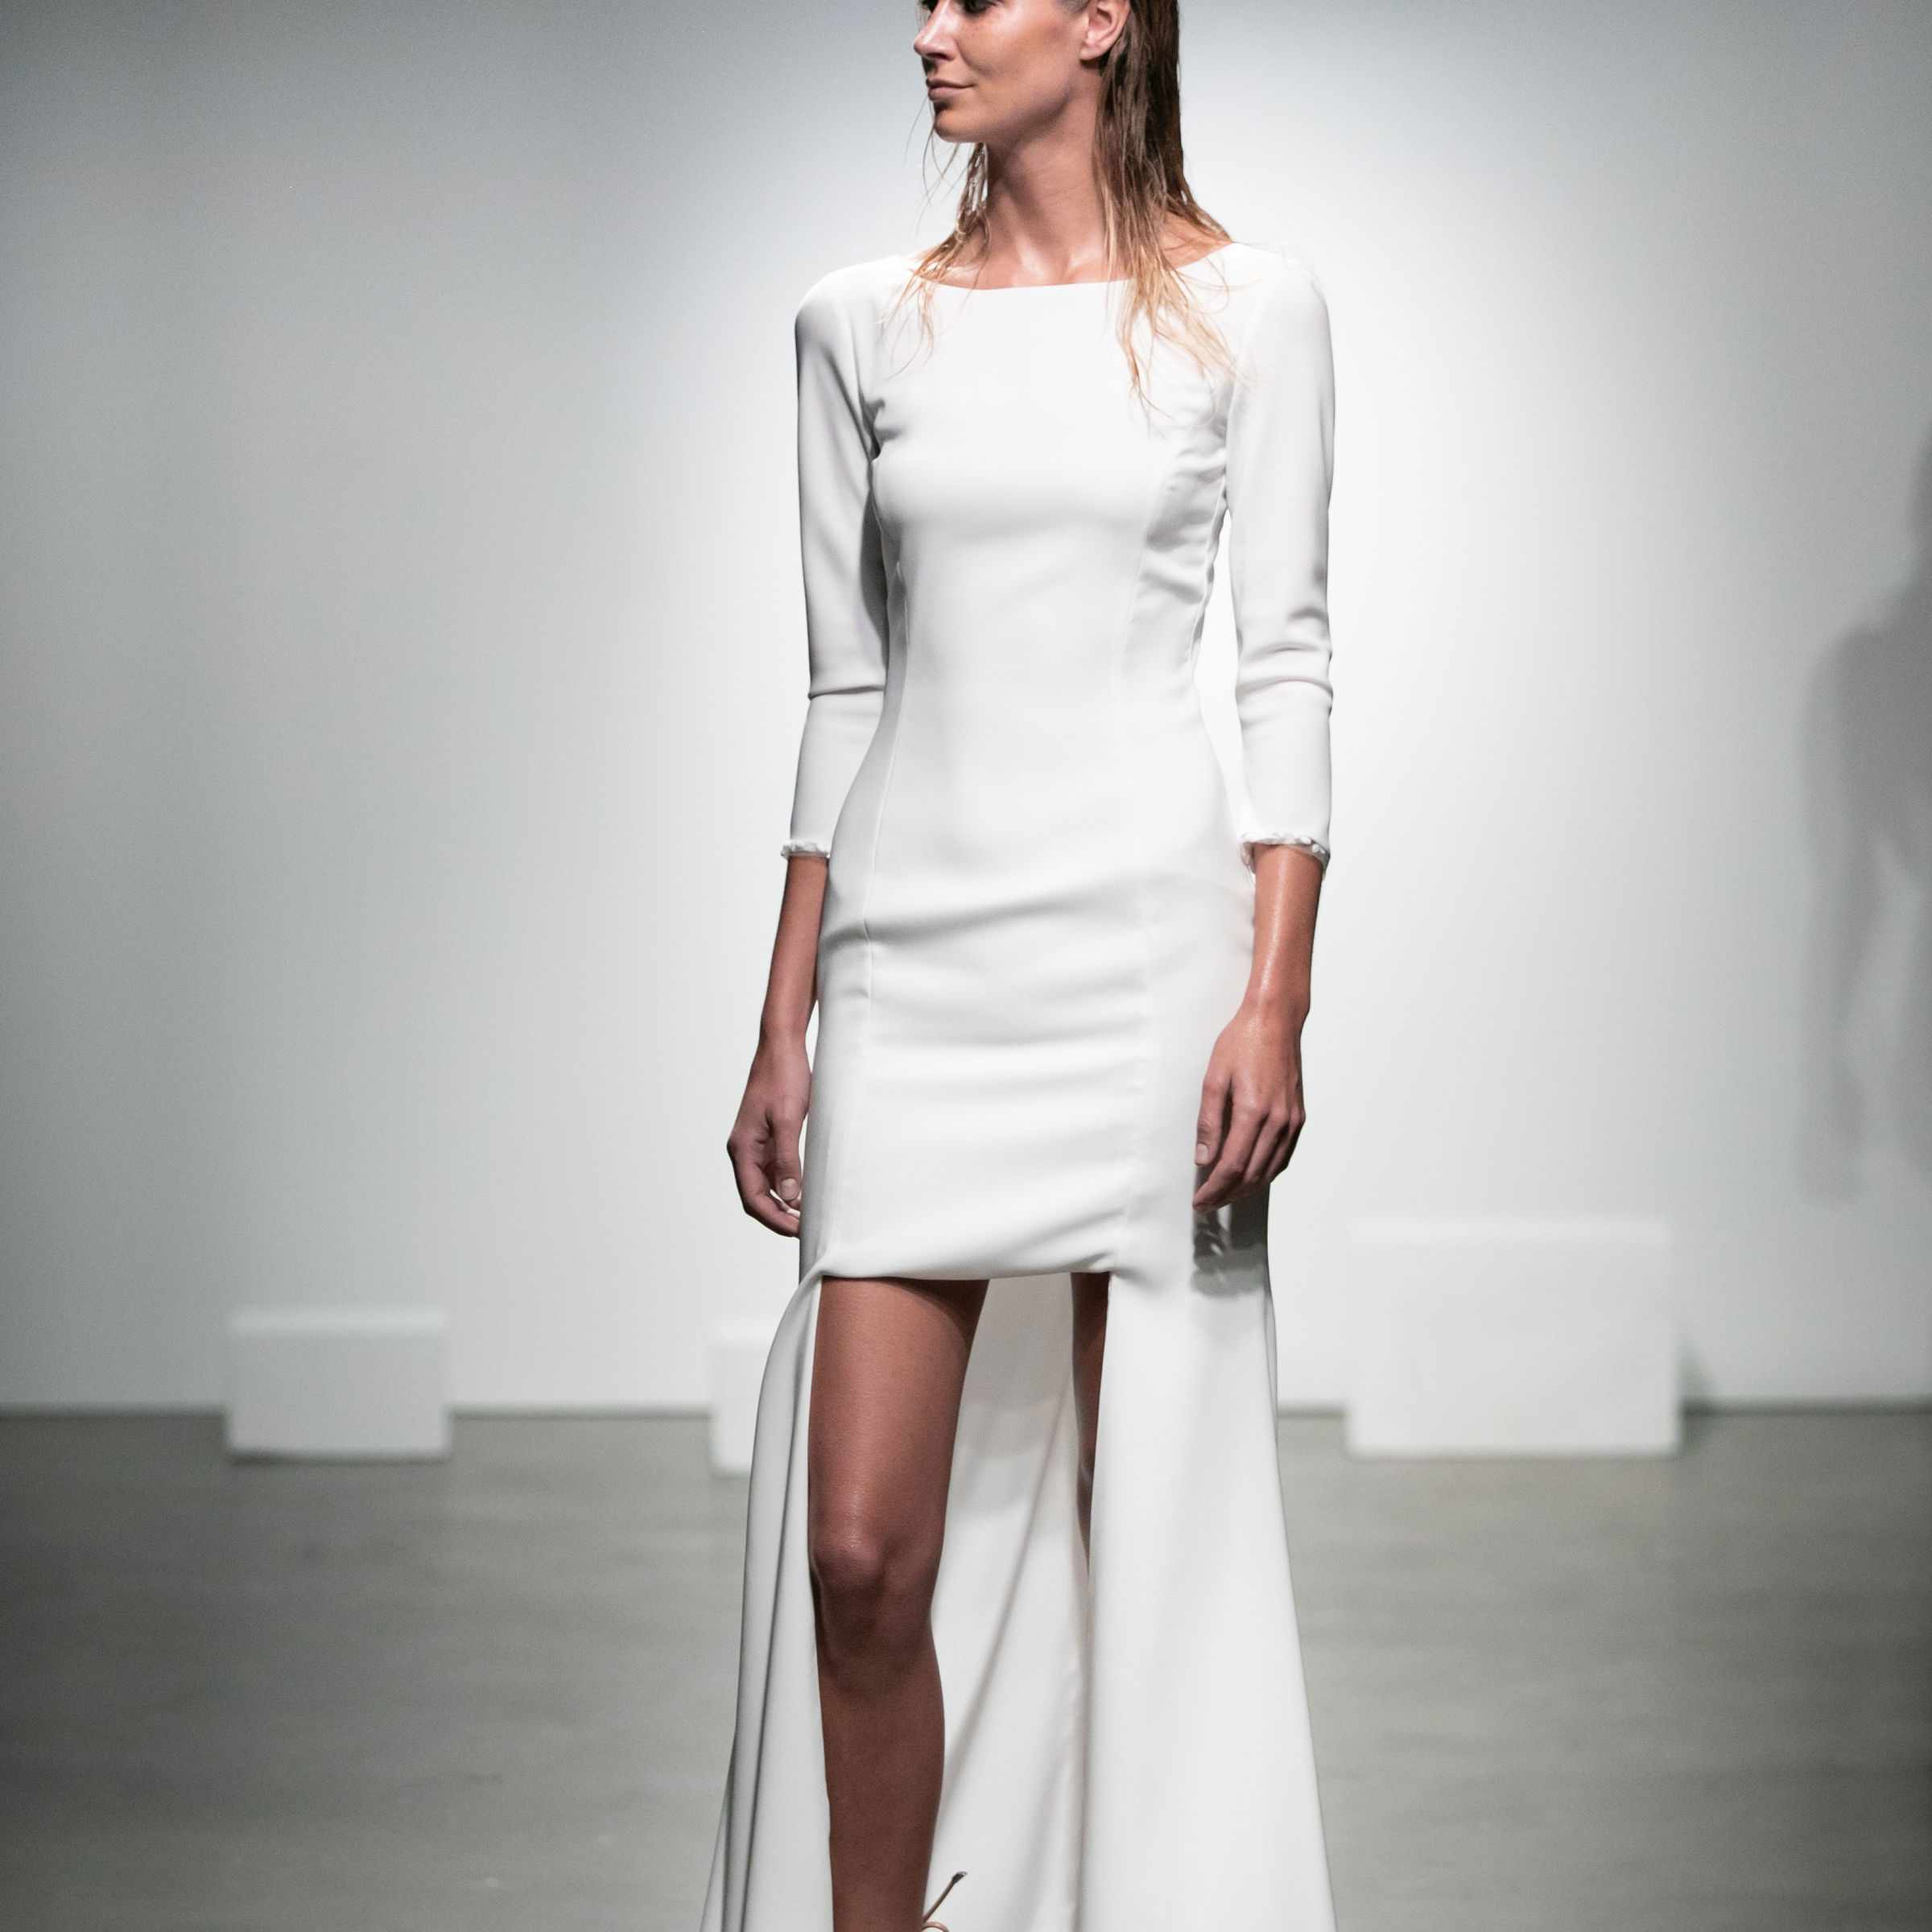 Model in high-low crepe dress with three-quarter sleeves